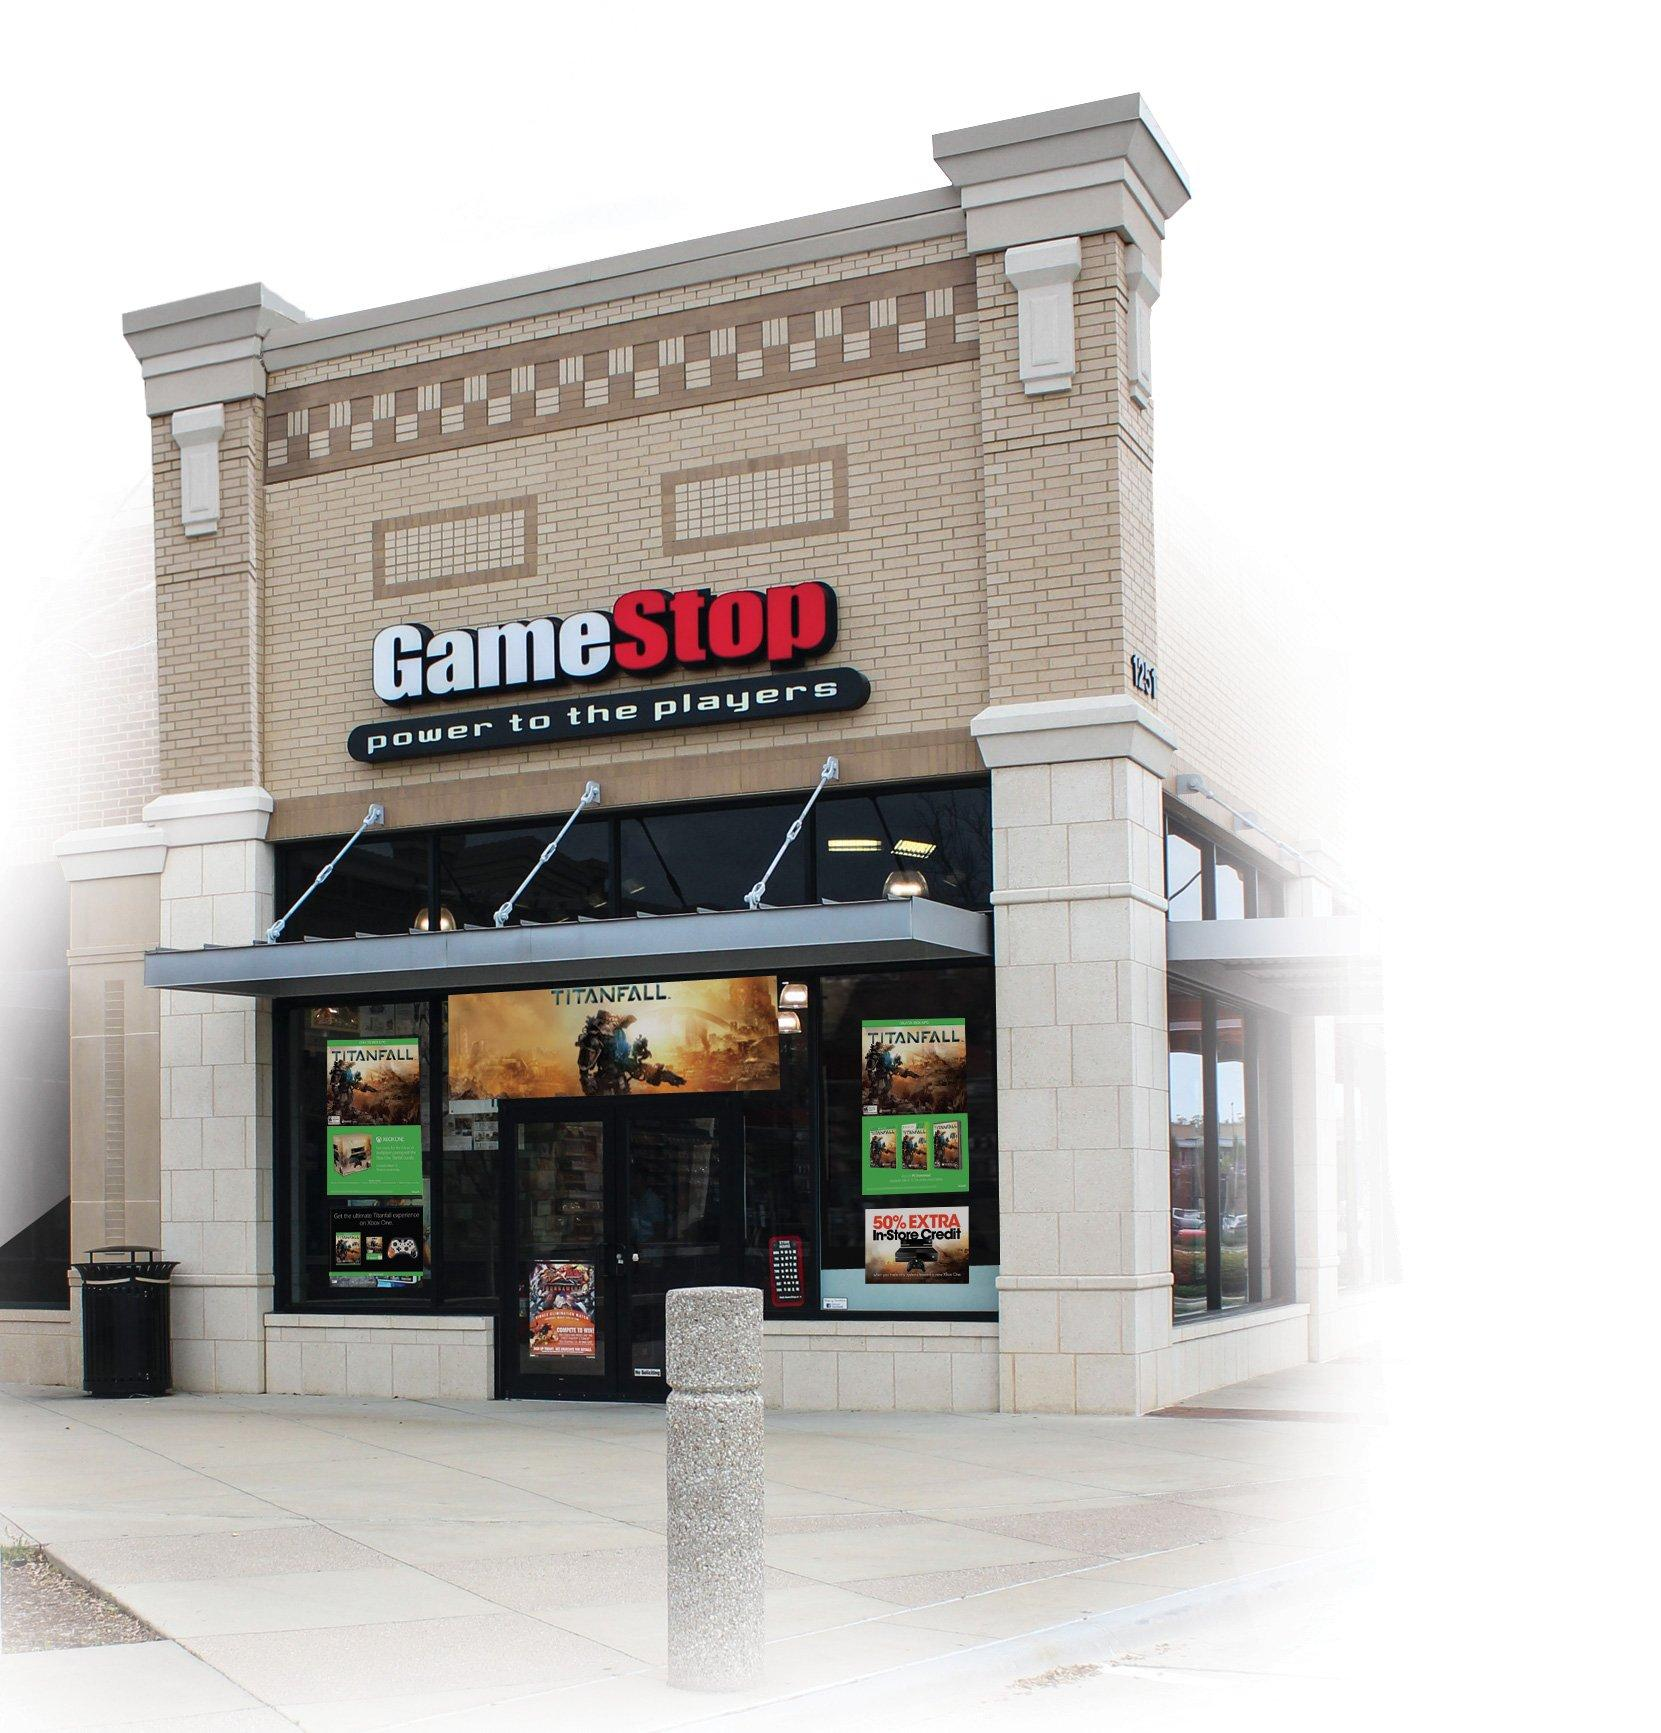 Northwest Promenade Gamestop Store In Bakersfield Ca Gamestop